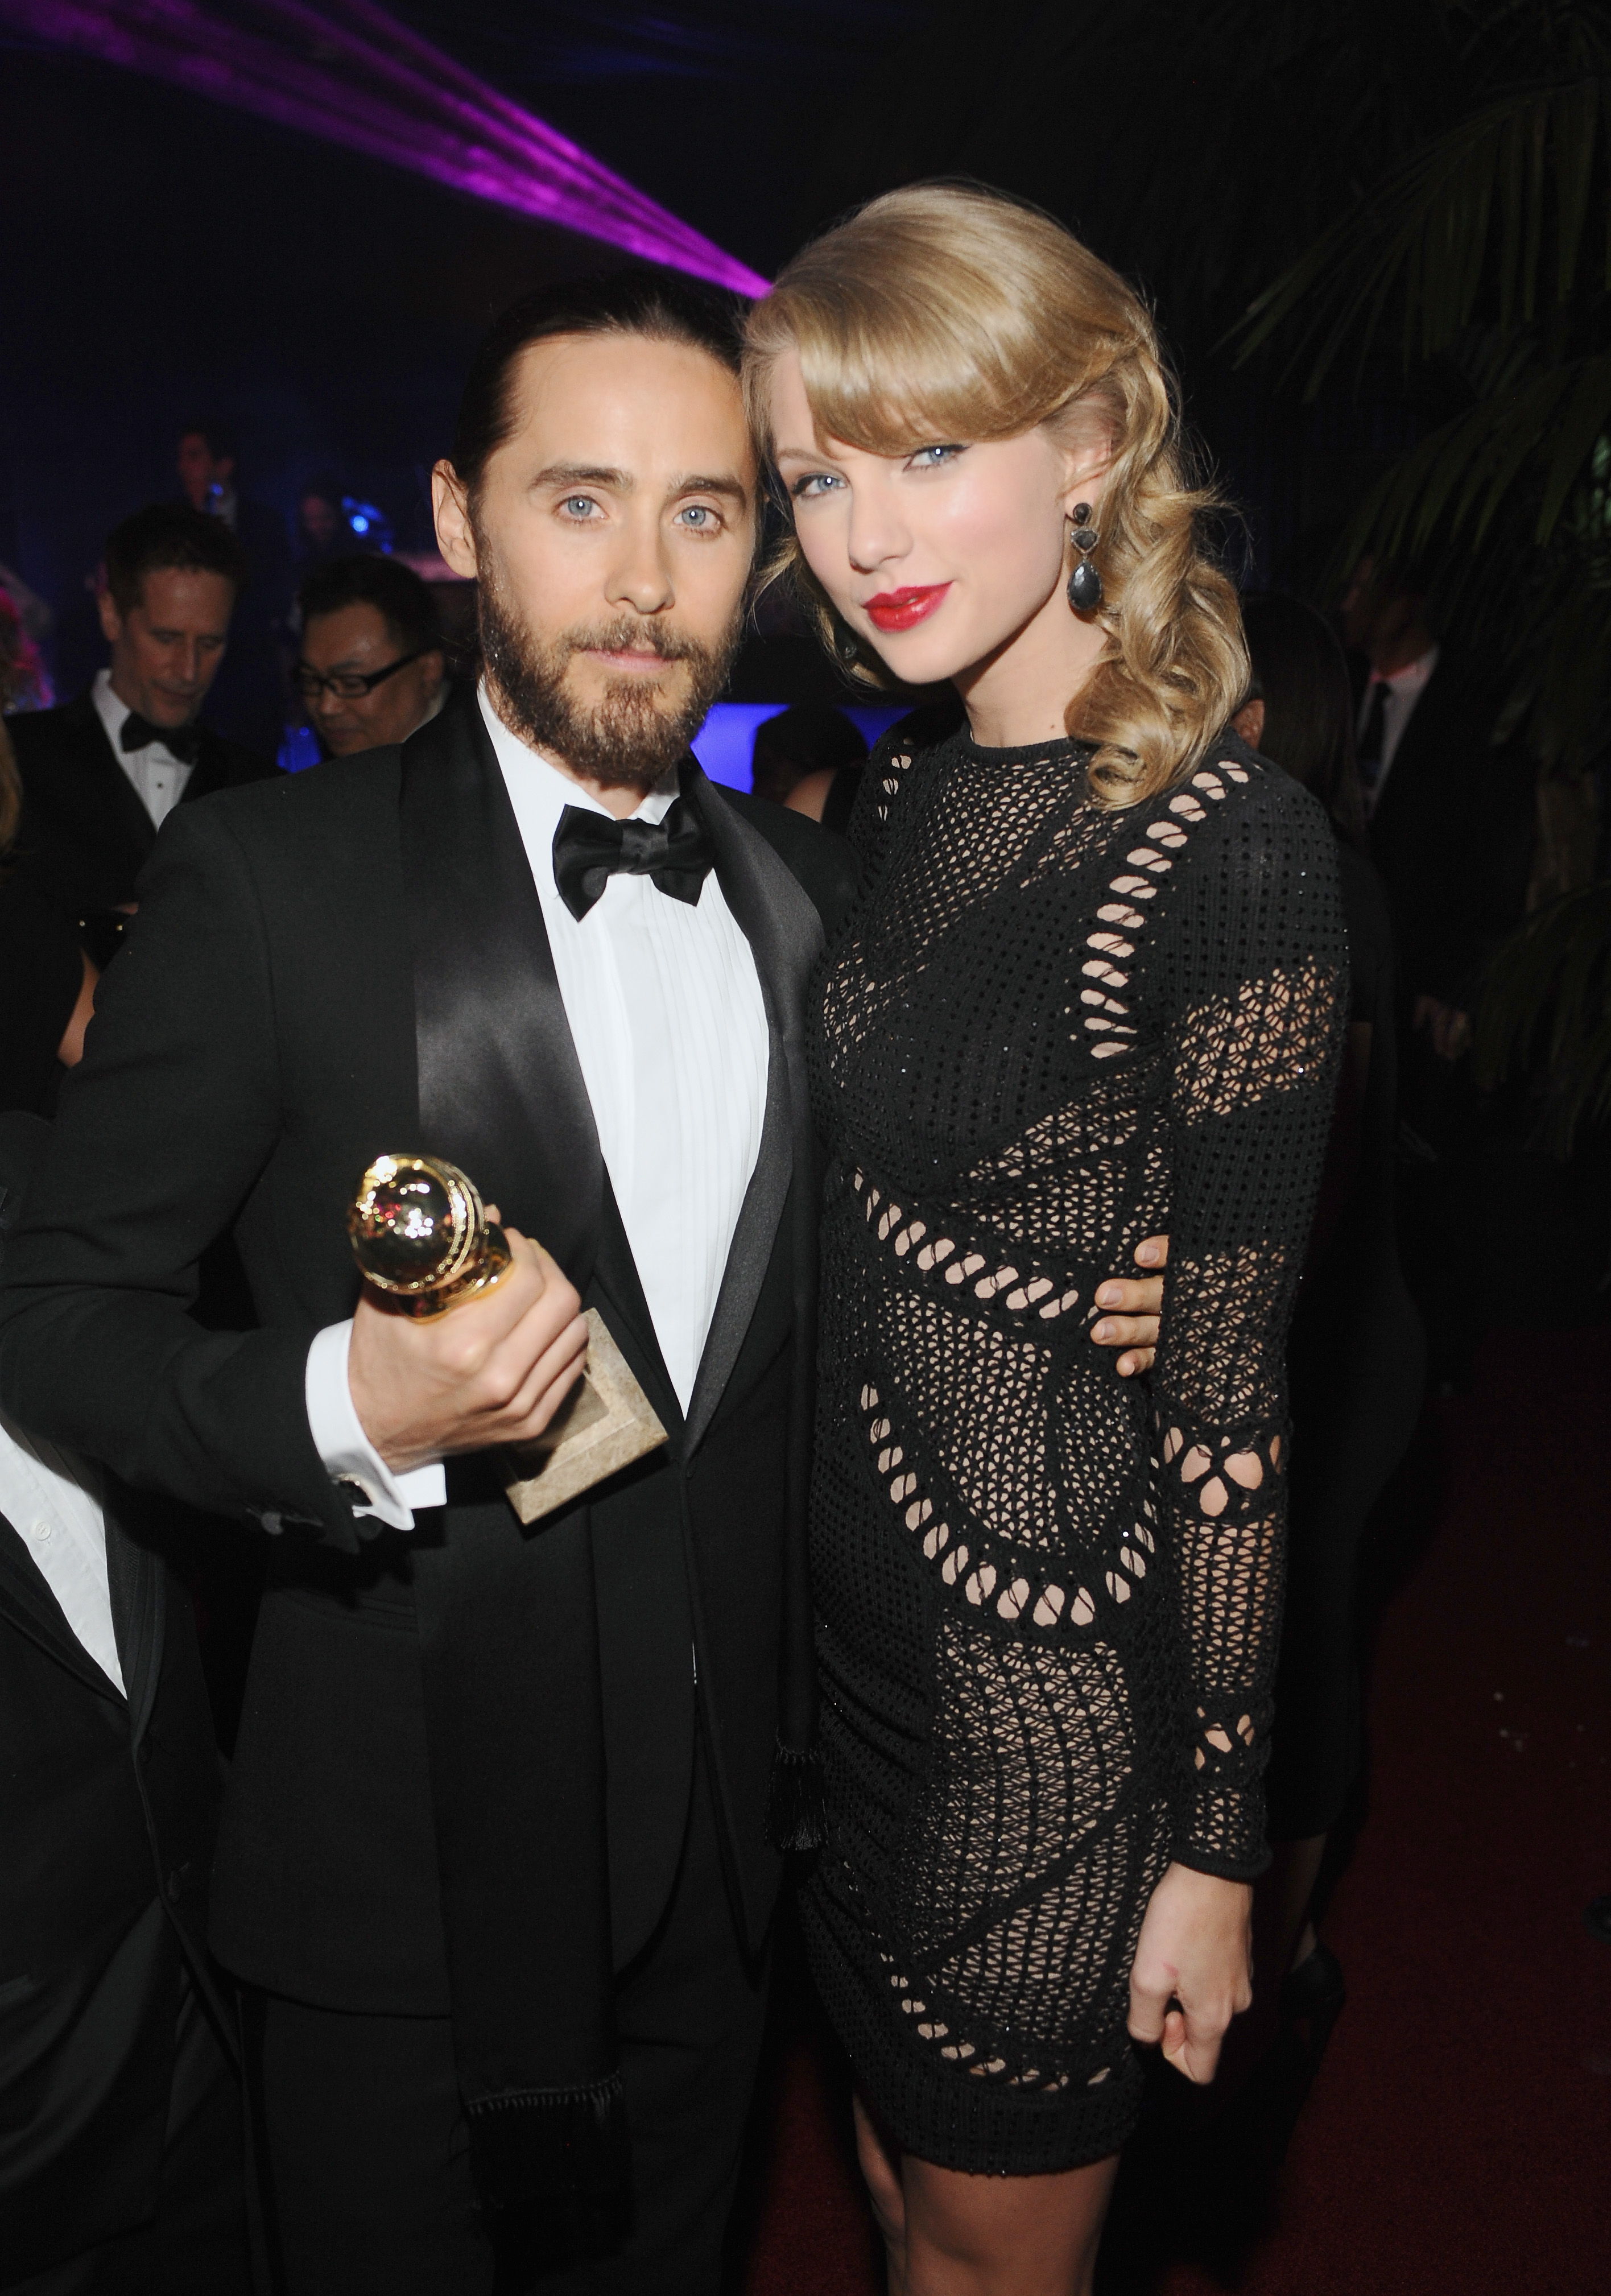 Jared Leto andTaylor Swift Golden Globes 2014